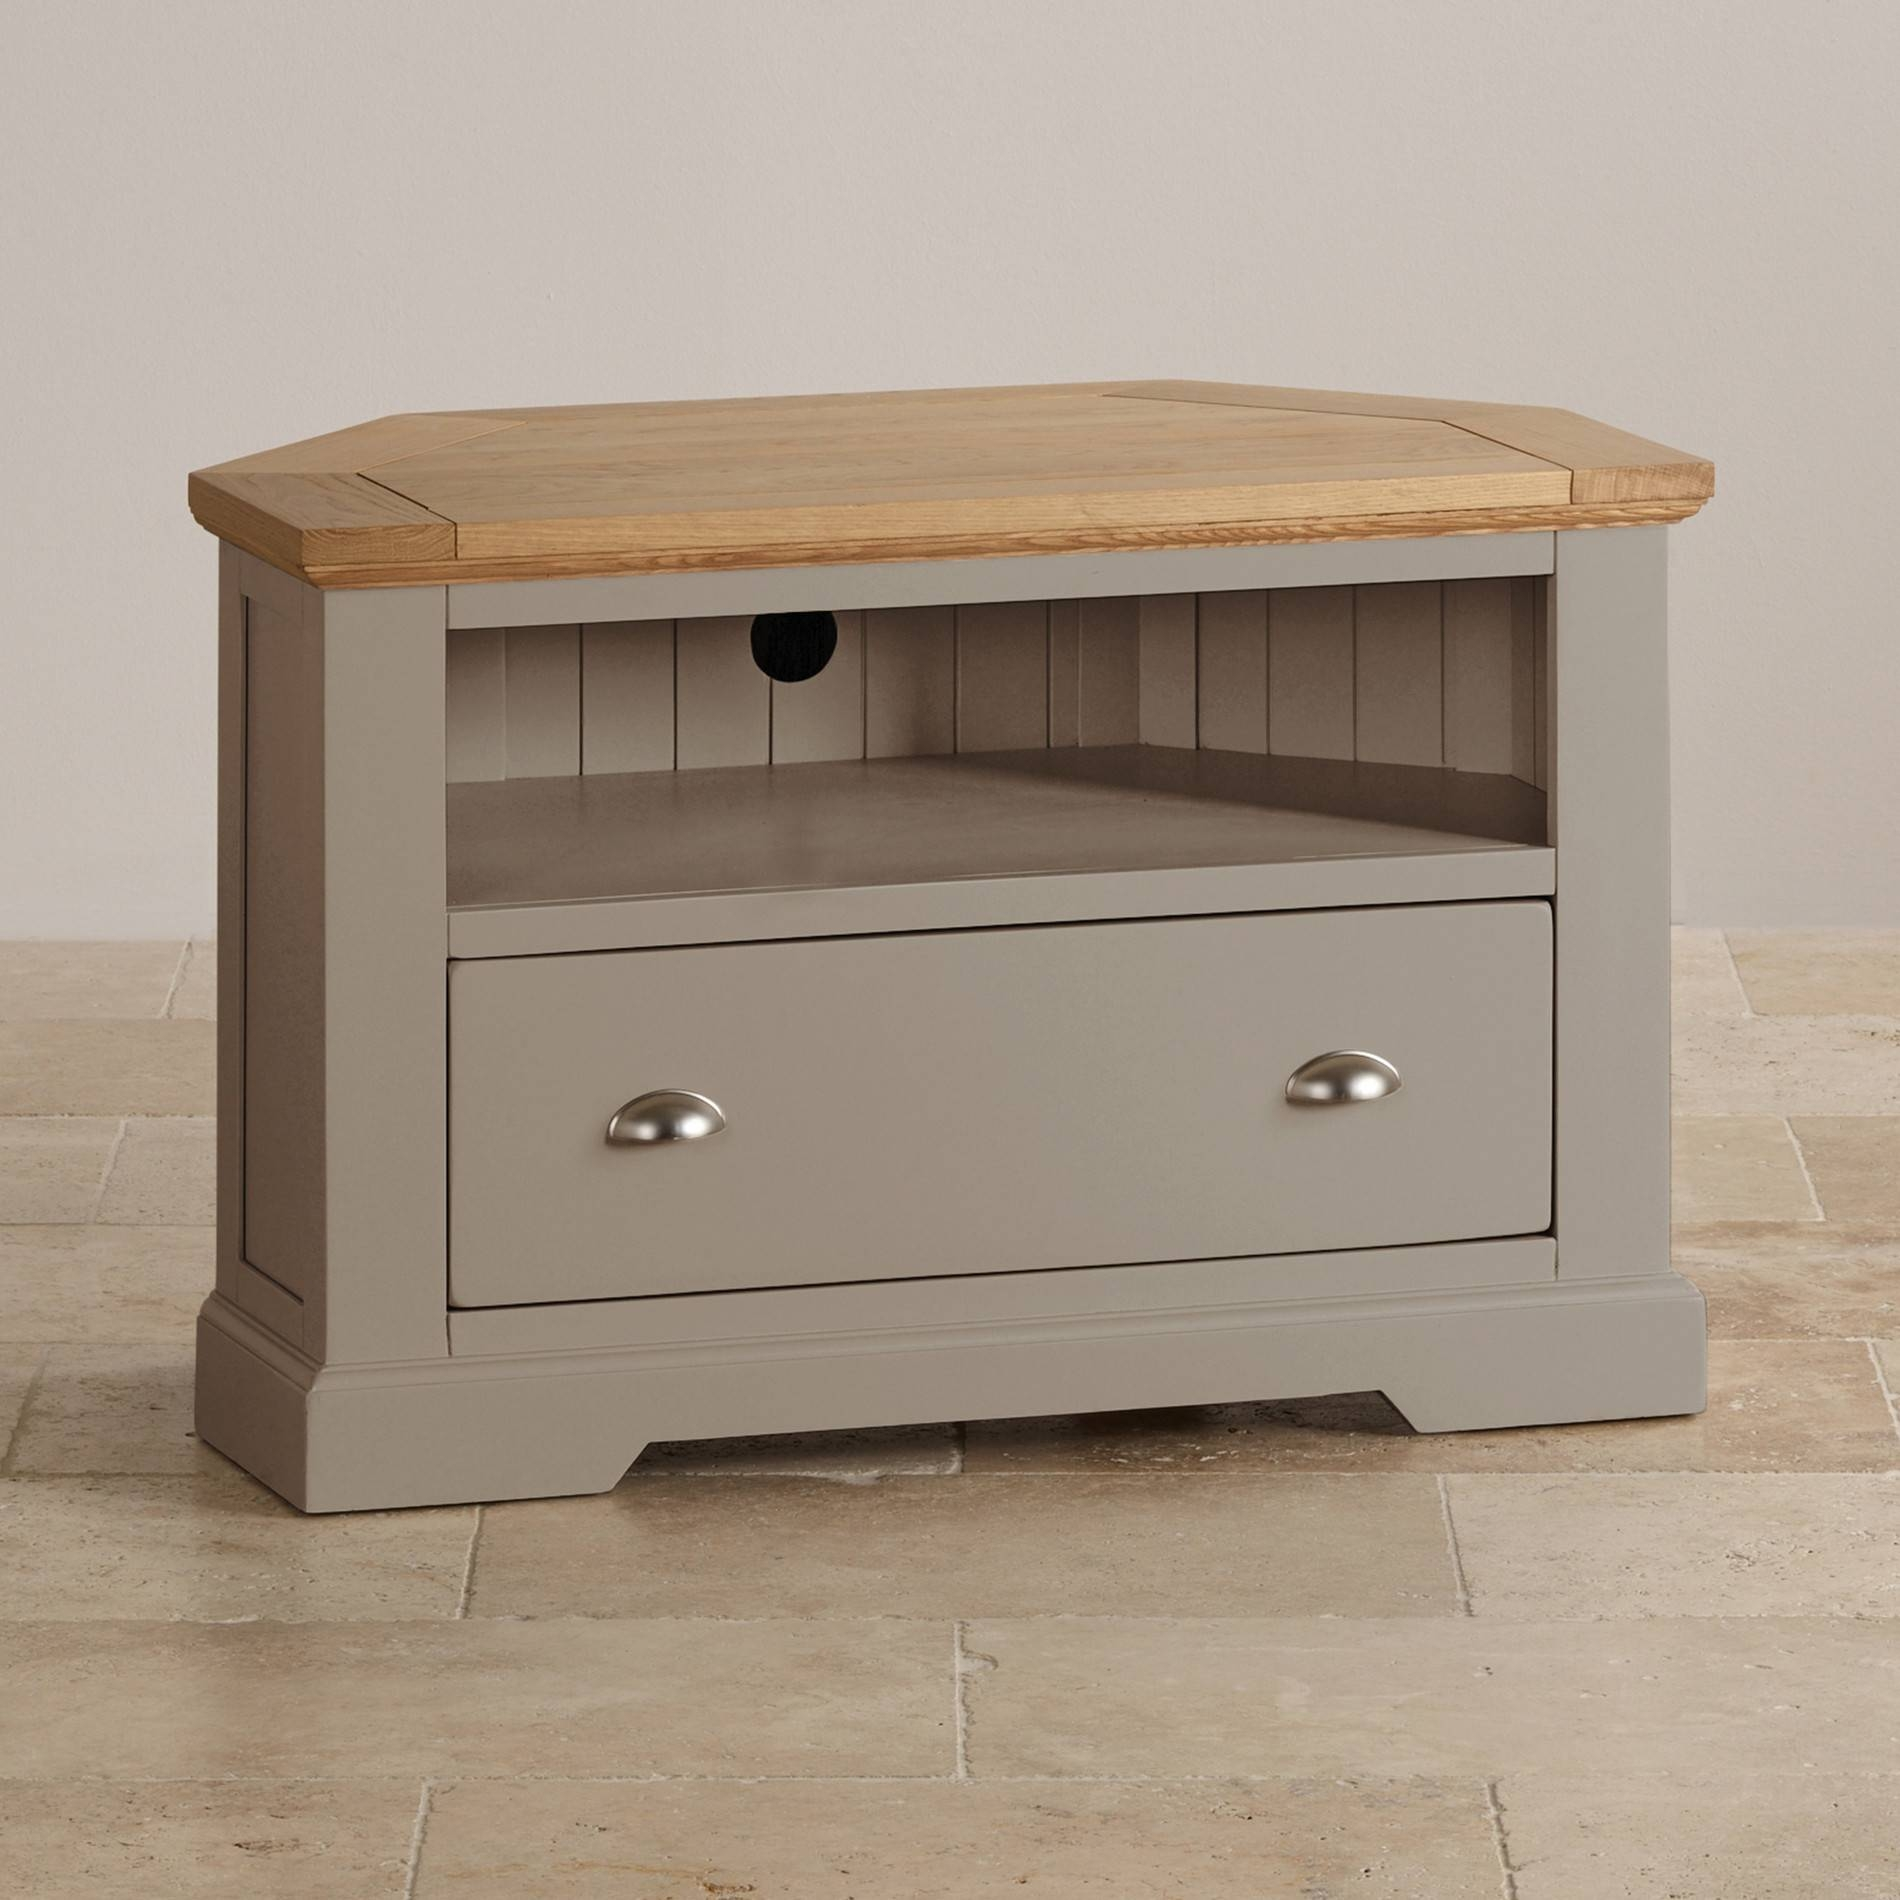 Tv Cabinets & Units | 100% Solid Oak | Oak Furniture Land intended for Chunky Tv Cabinets (Image 11 of 15)